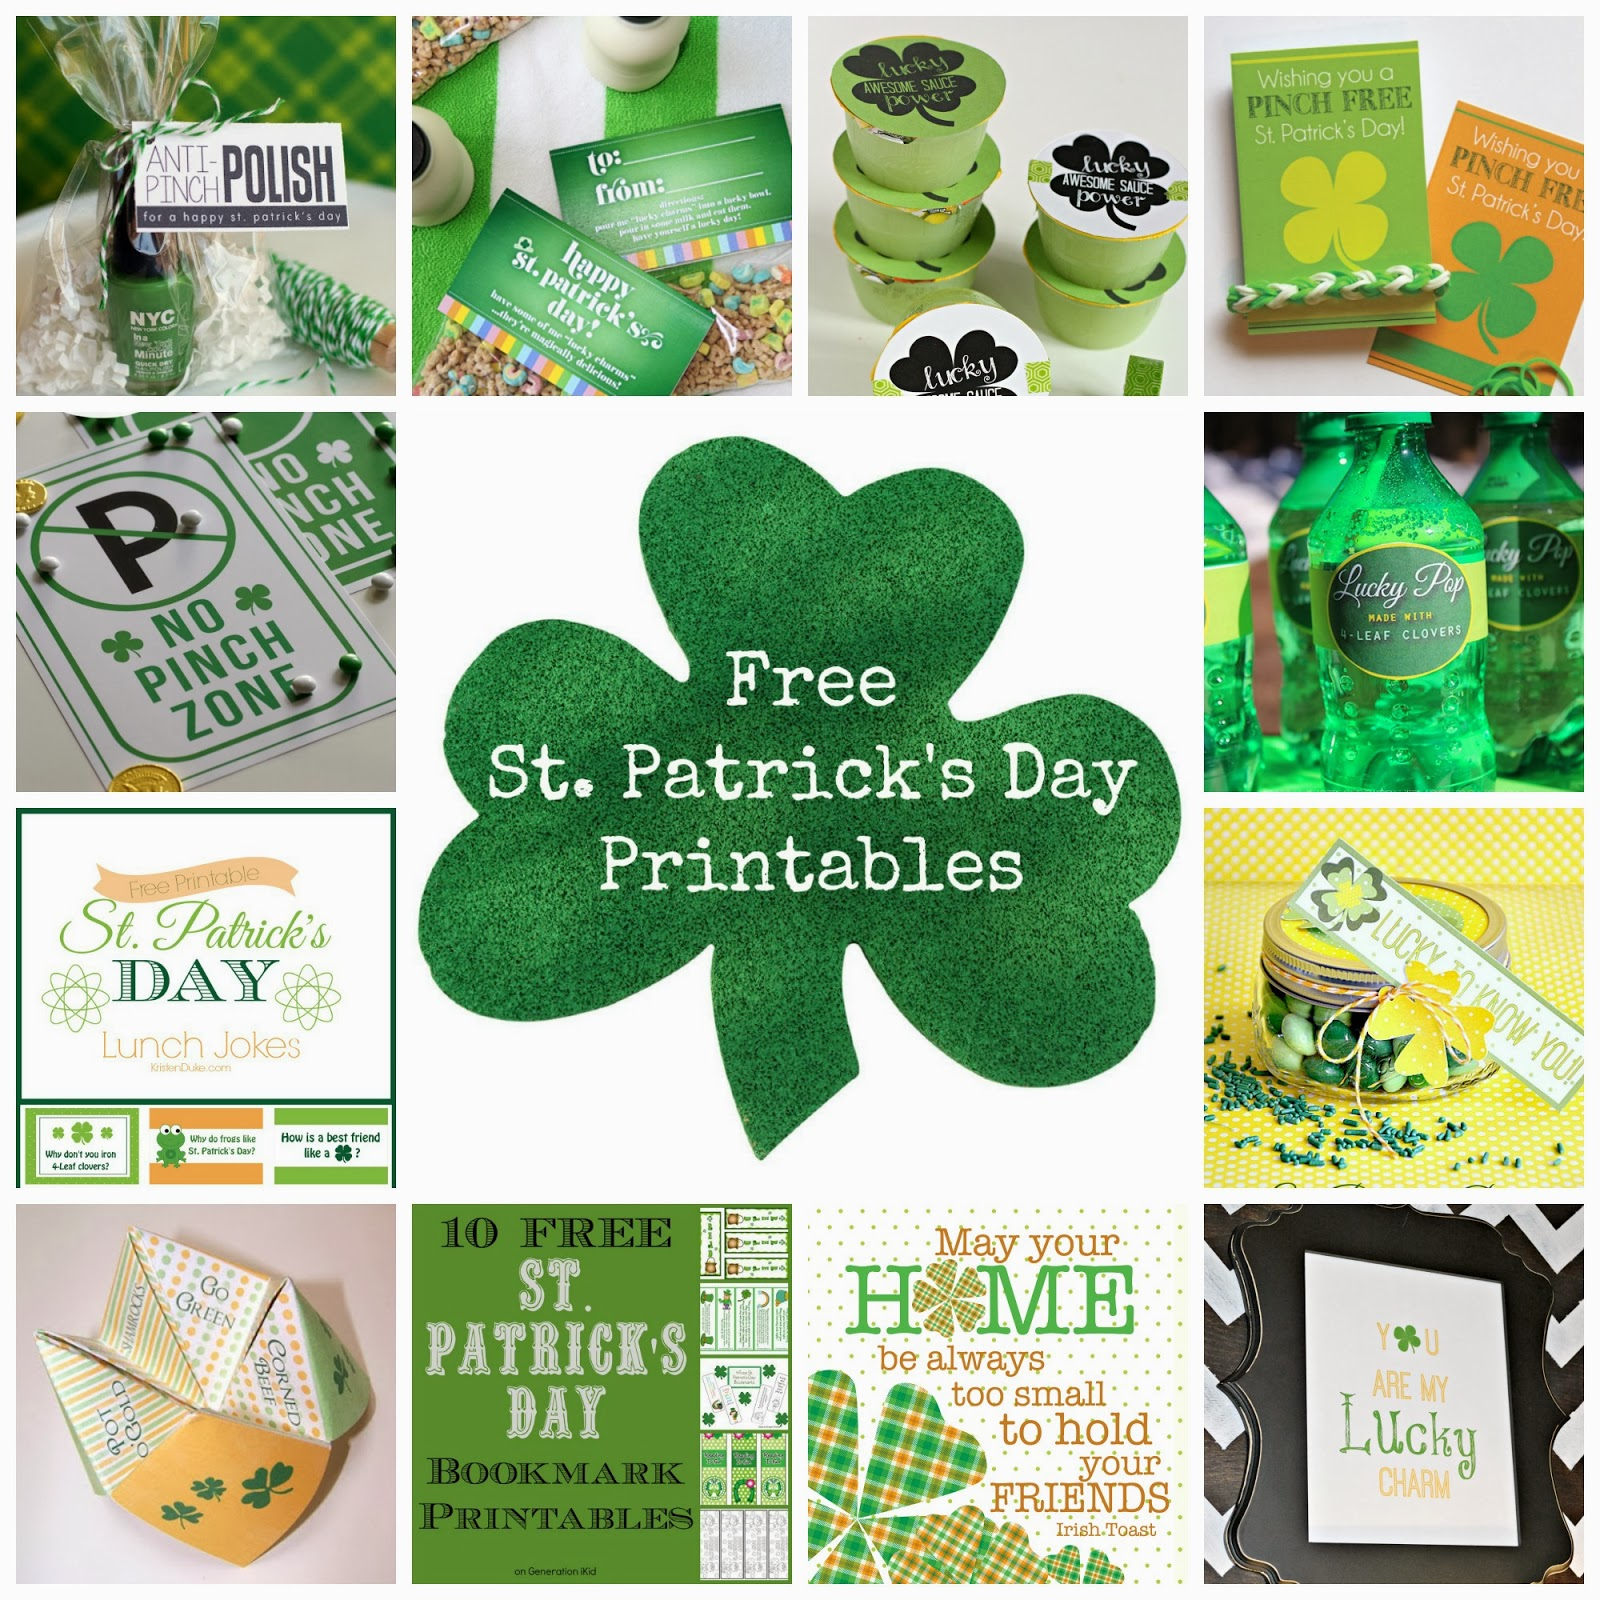 Some Of The Best Things In Life Are Mistakes Free St Patrick S Day Printables